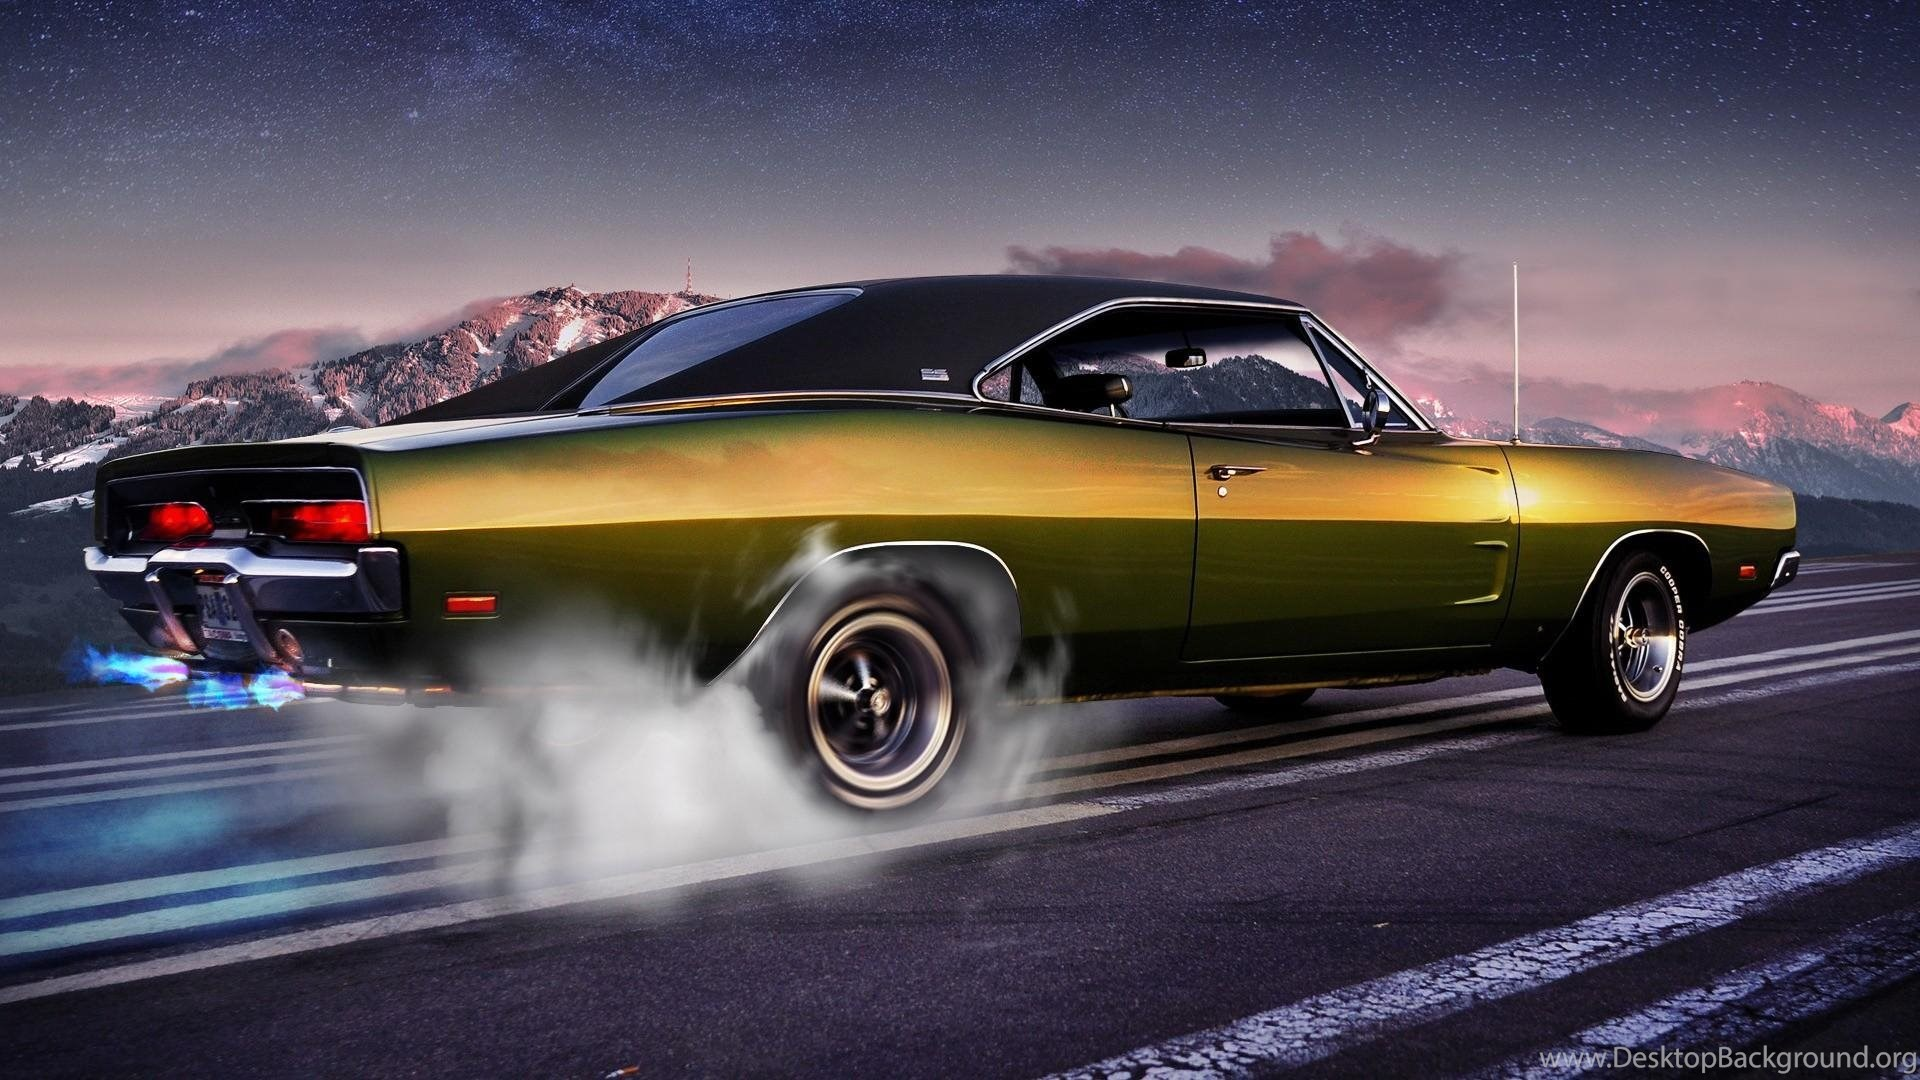 Top Old Muscle Cars Wallpapers Hd Images For Pinterest Desktop ...